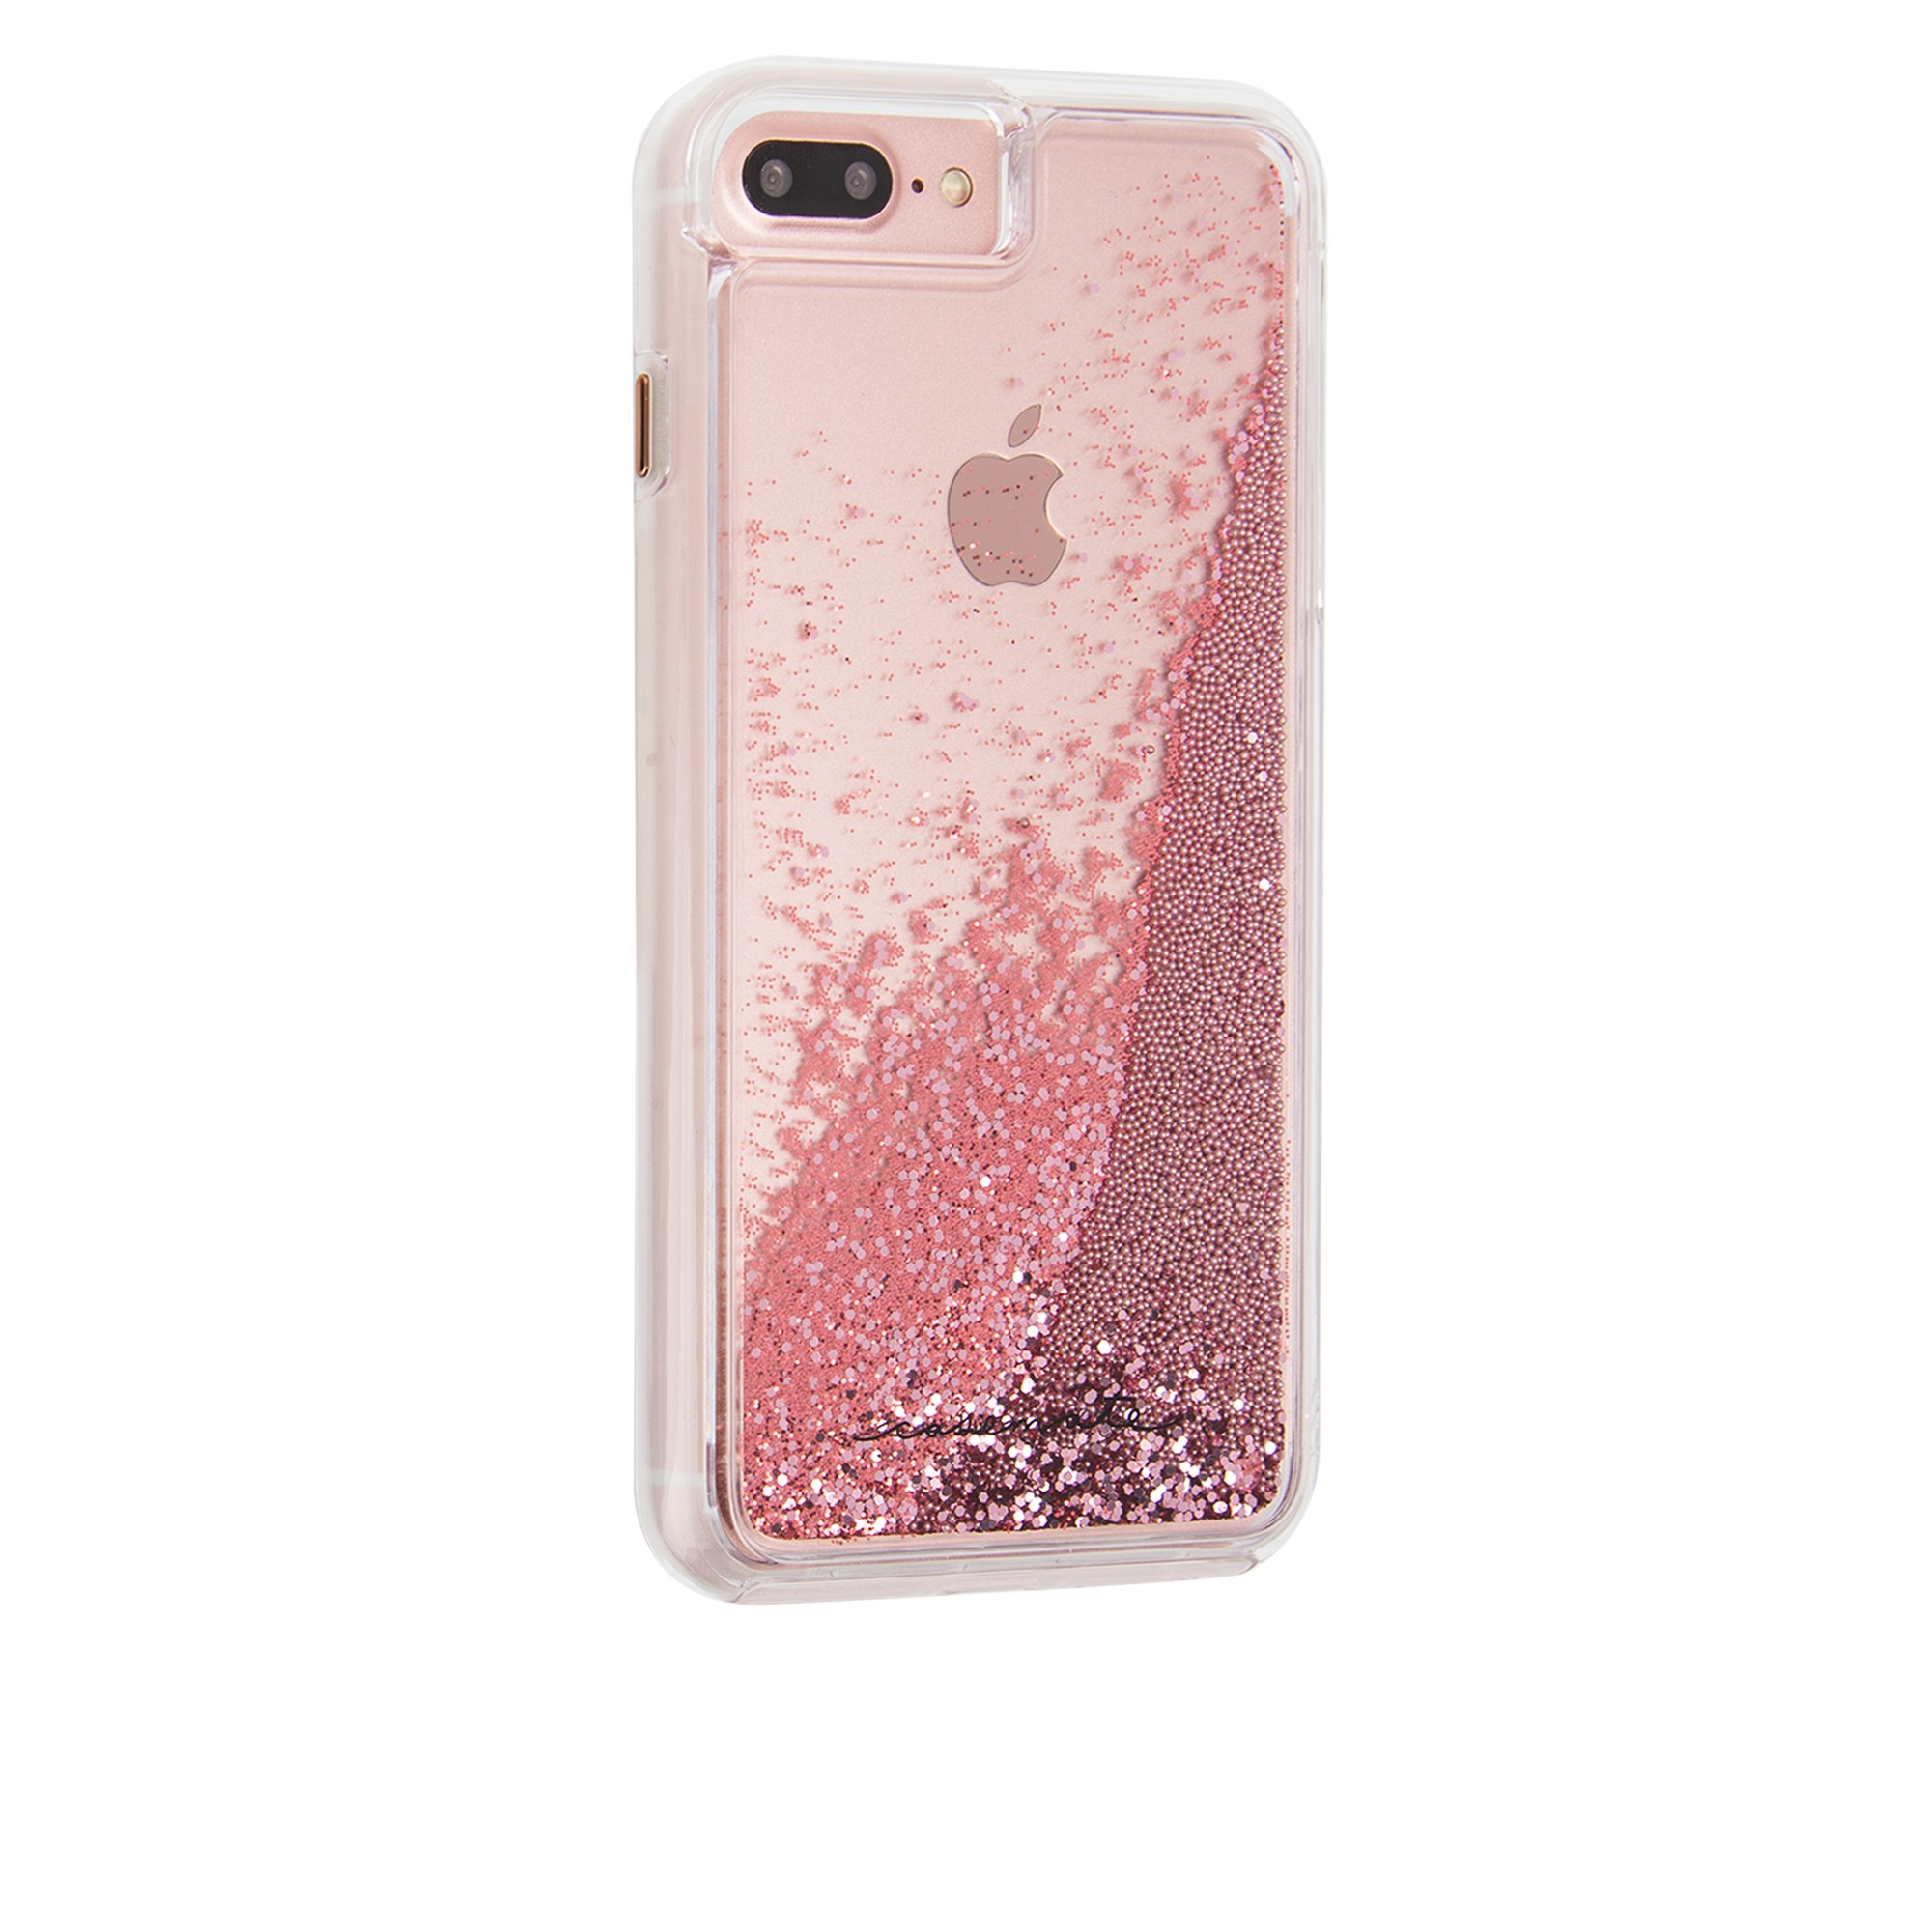 timeless design 2e995 00c63 iPhone 8/7/6S Plus Case-mate Rose Gold Waterfall Naked Tough case